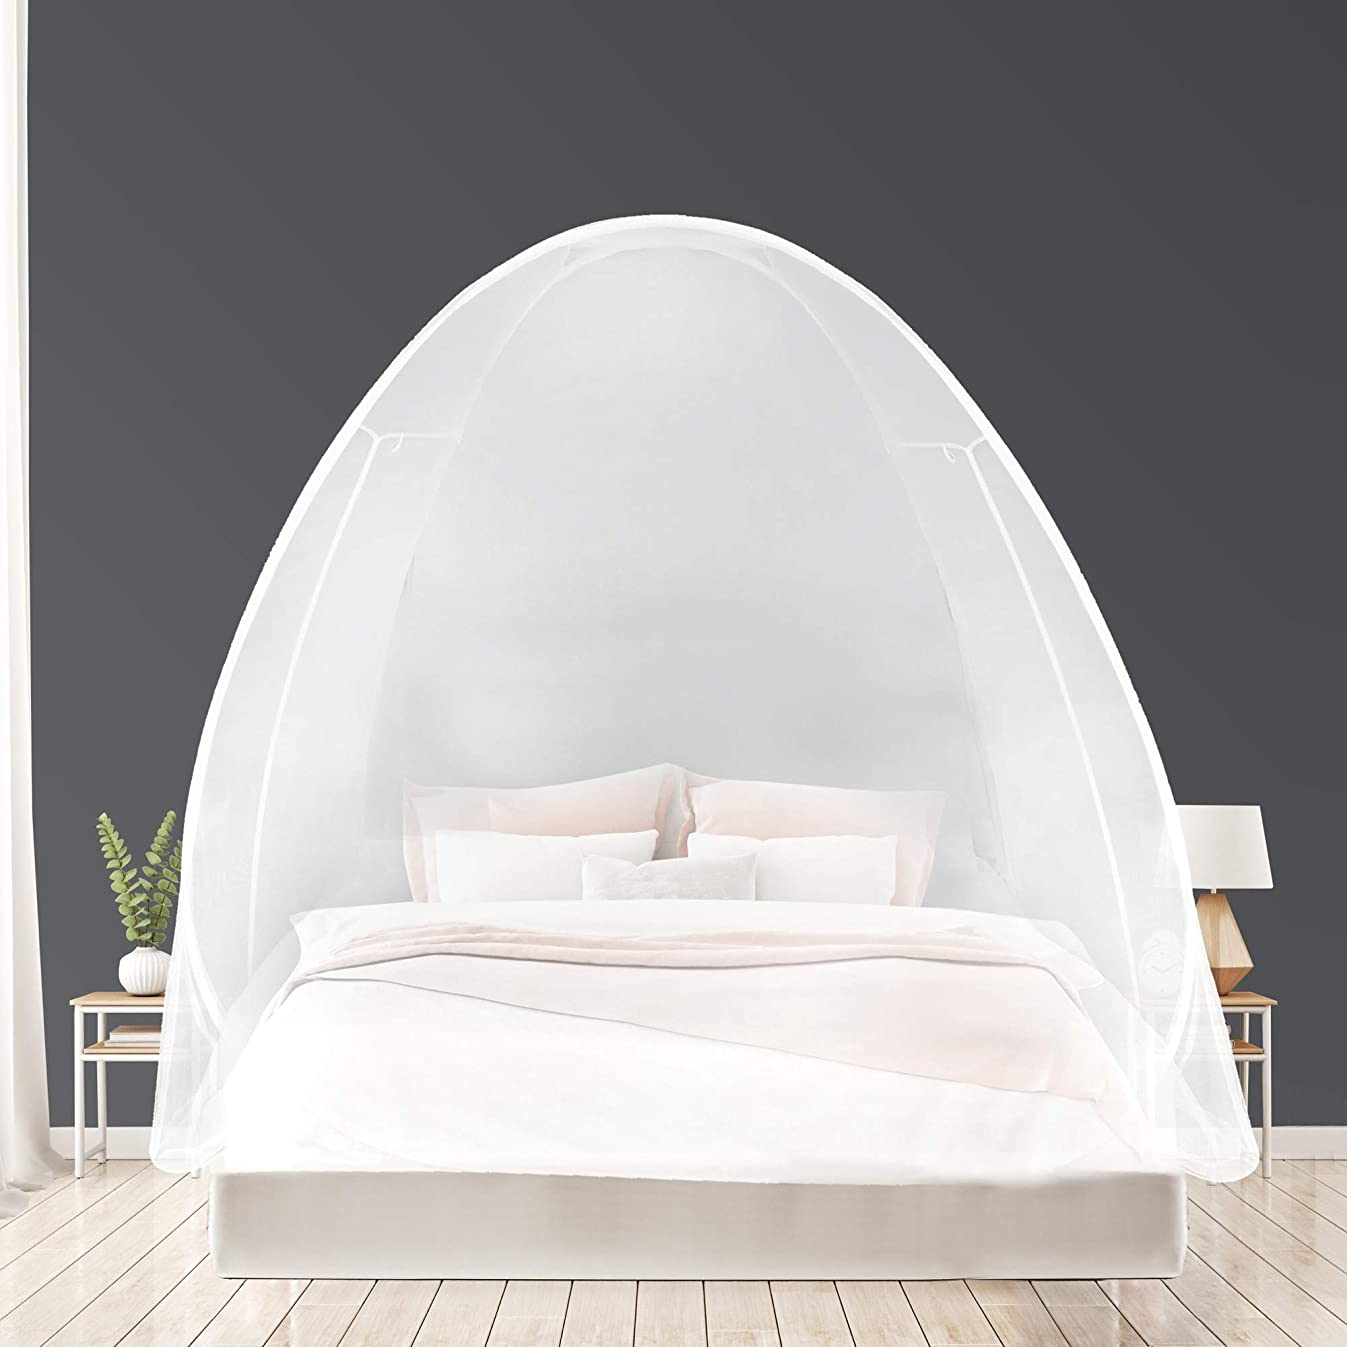 EVEN NATURALS Luxury Pop Up Mosquito Net Tent, Large: for Twin to King Size Bed, Extra Fine Holes, Canopy with Lace, Folding Design with Bottom, 2 Entries, Easy to Install, Storage Bag, No Chemicals